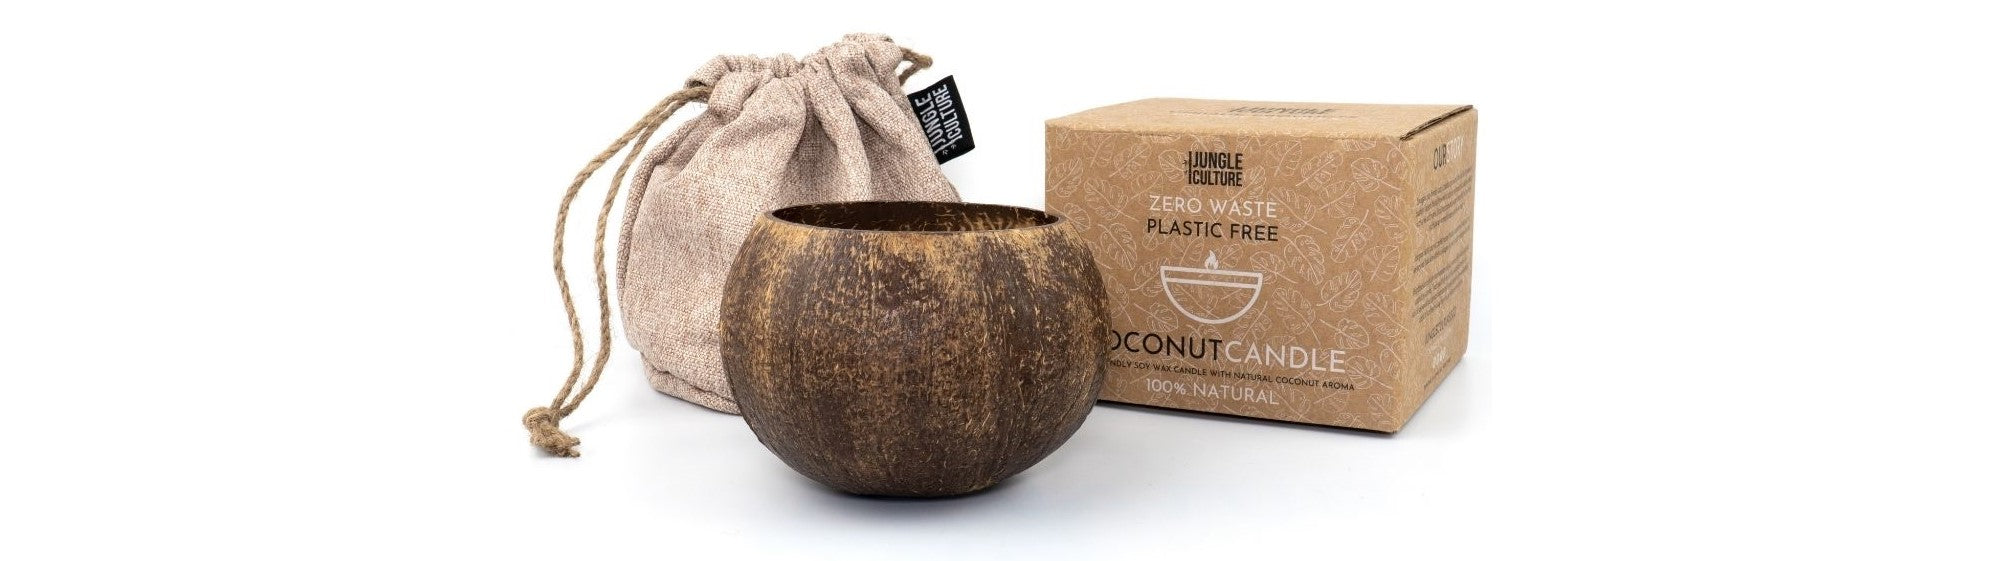 An eco coconut candle, cotton carry bag and kraft paper box.